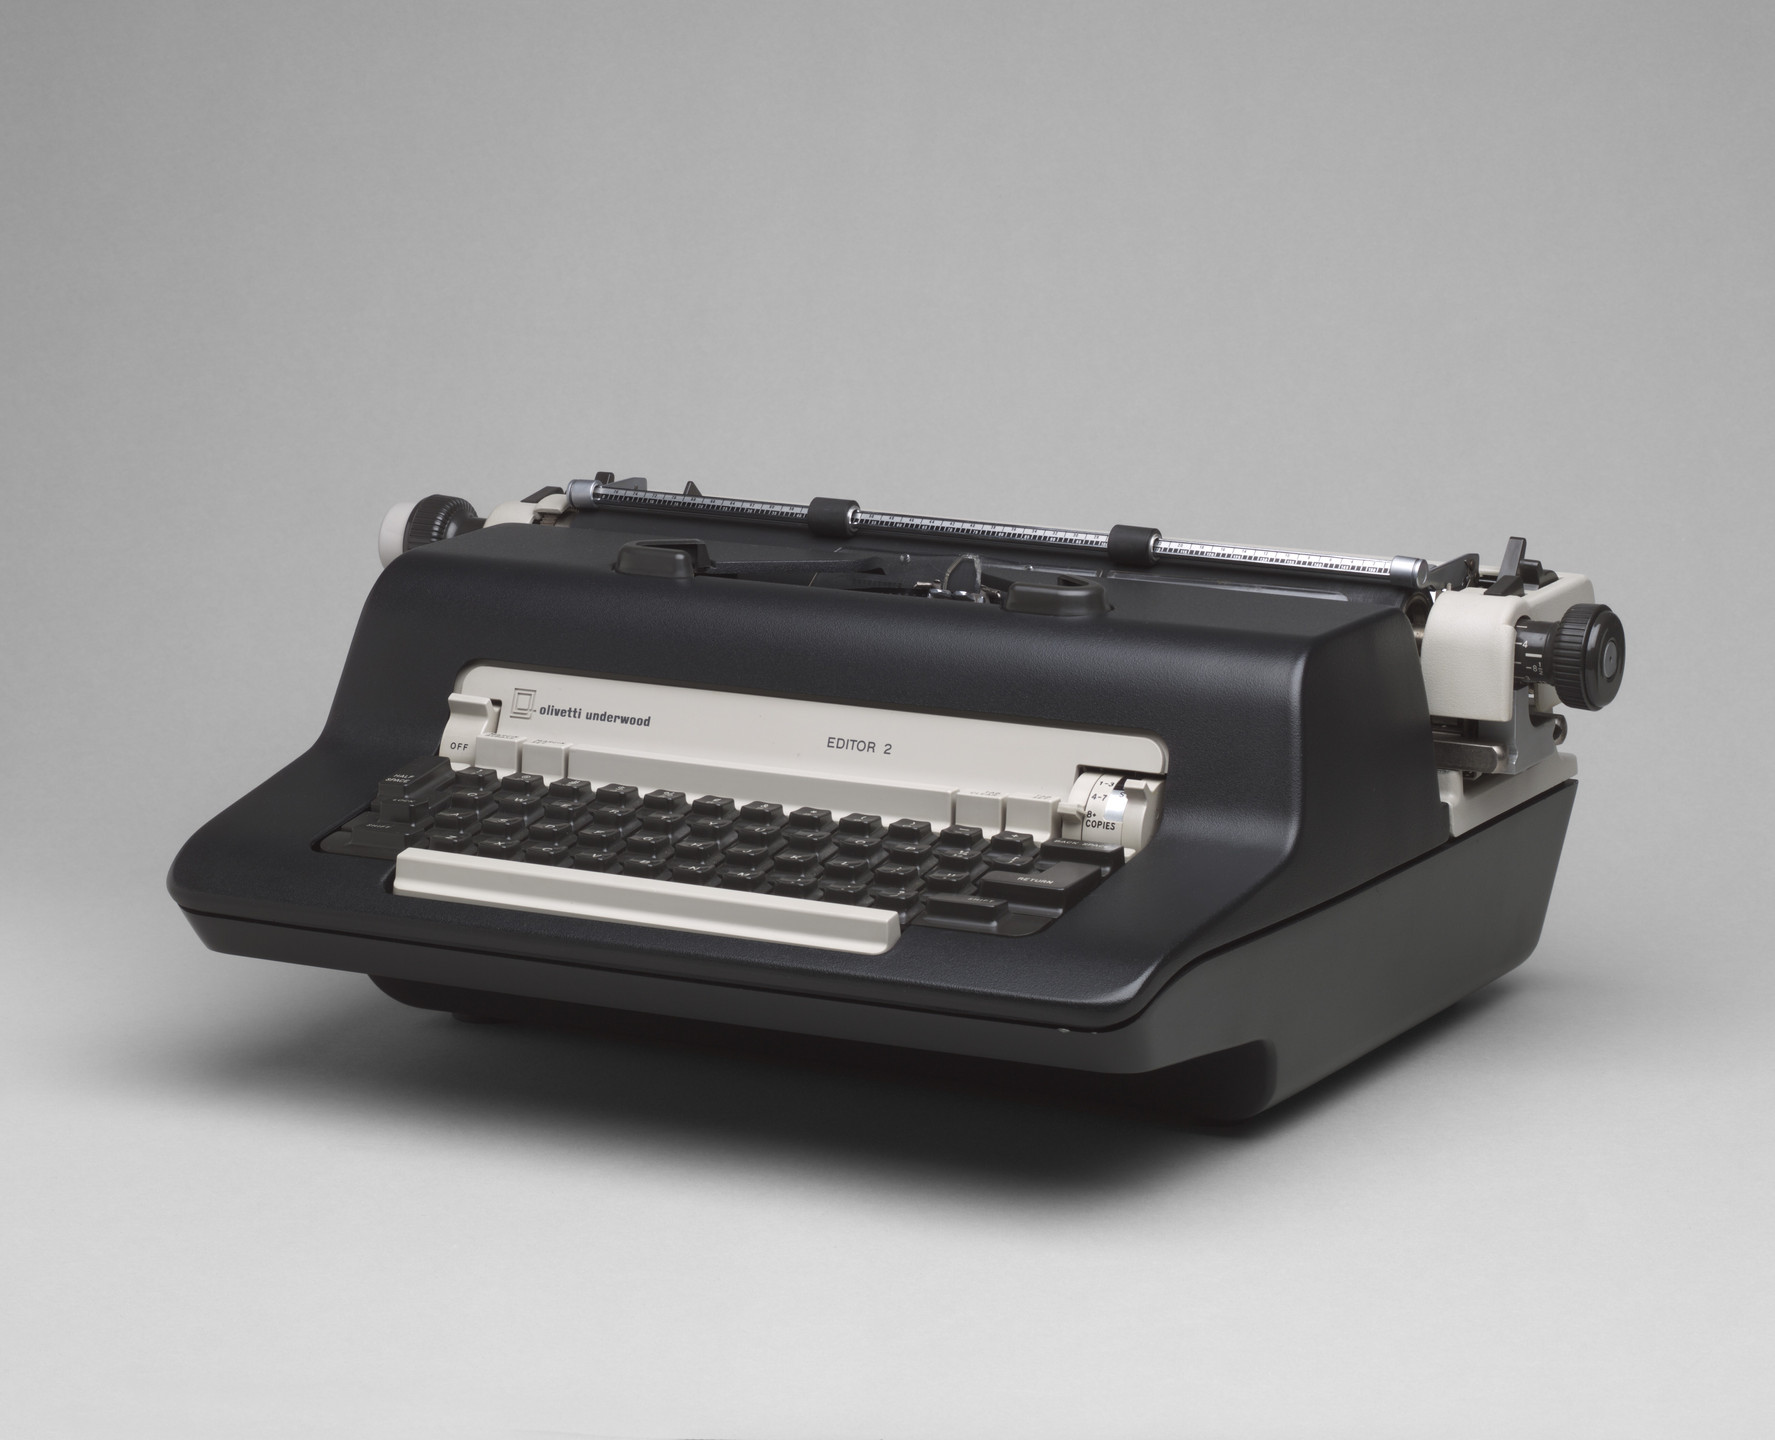 George Nelson. Editor 2 Electric Typewriter. 1968